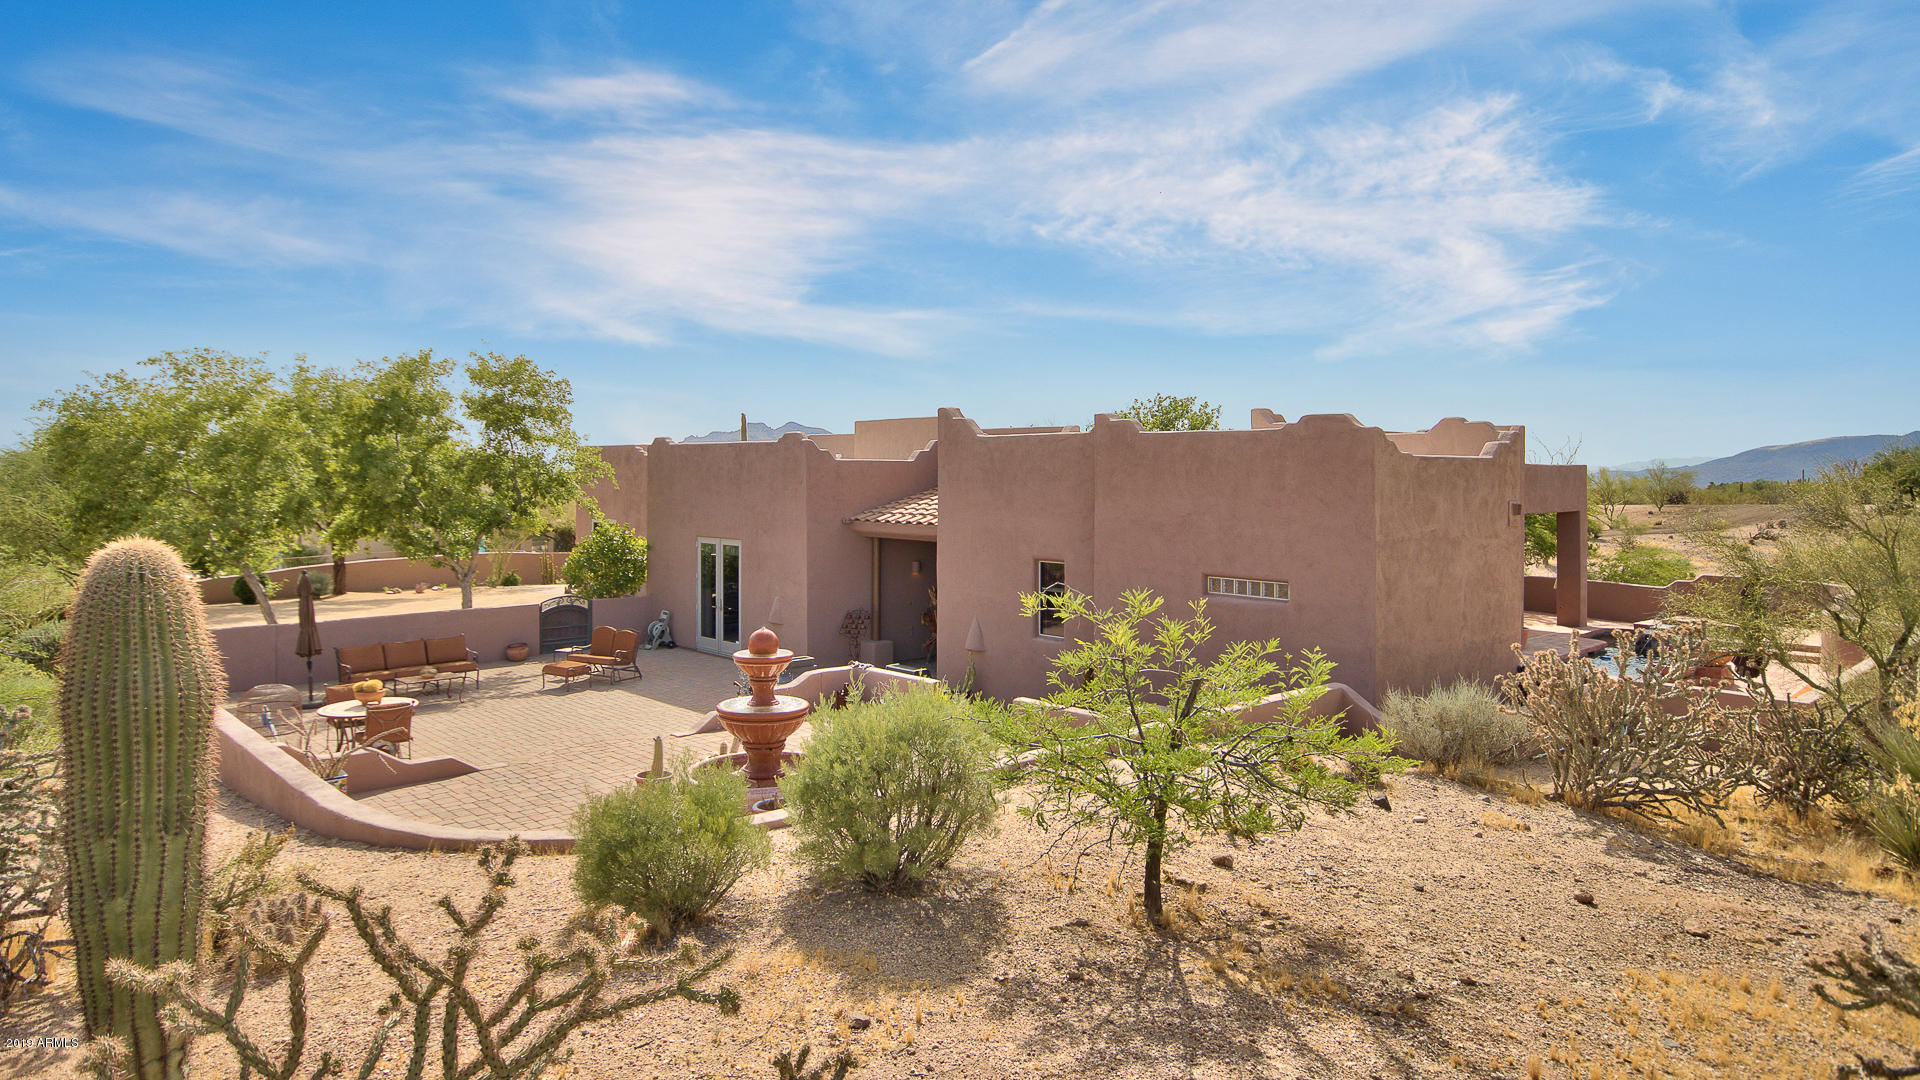 Carefree AZ Real Estate + Homes for Sale + Homes for